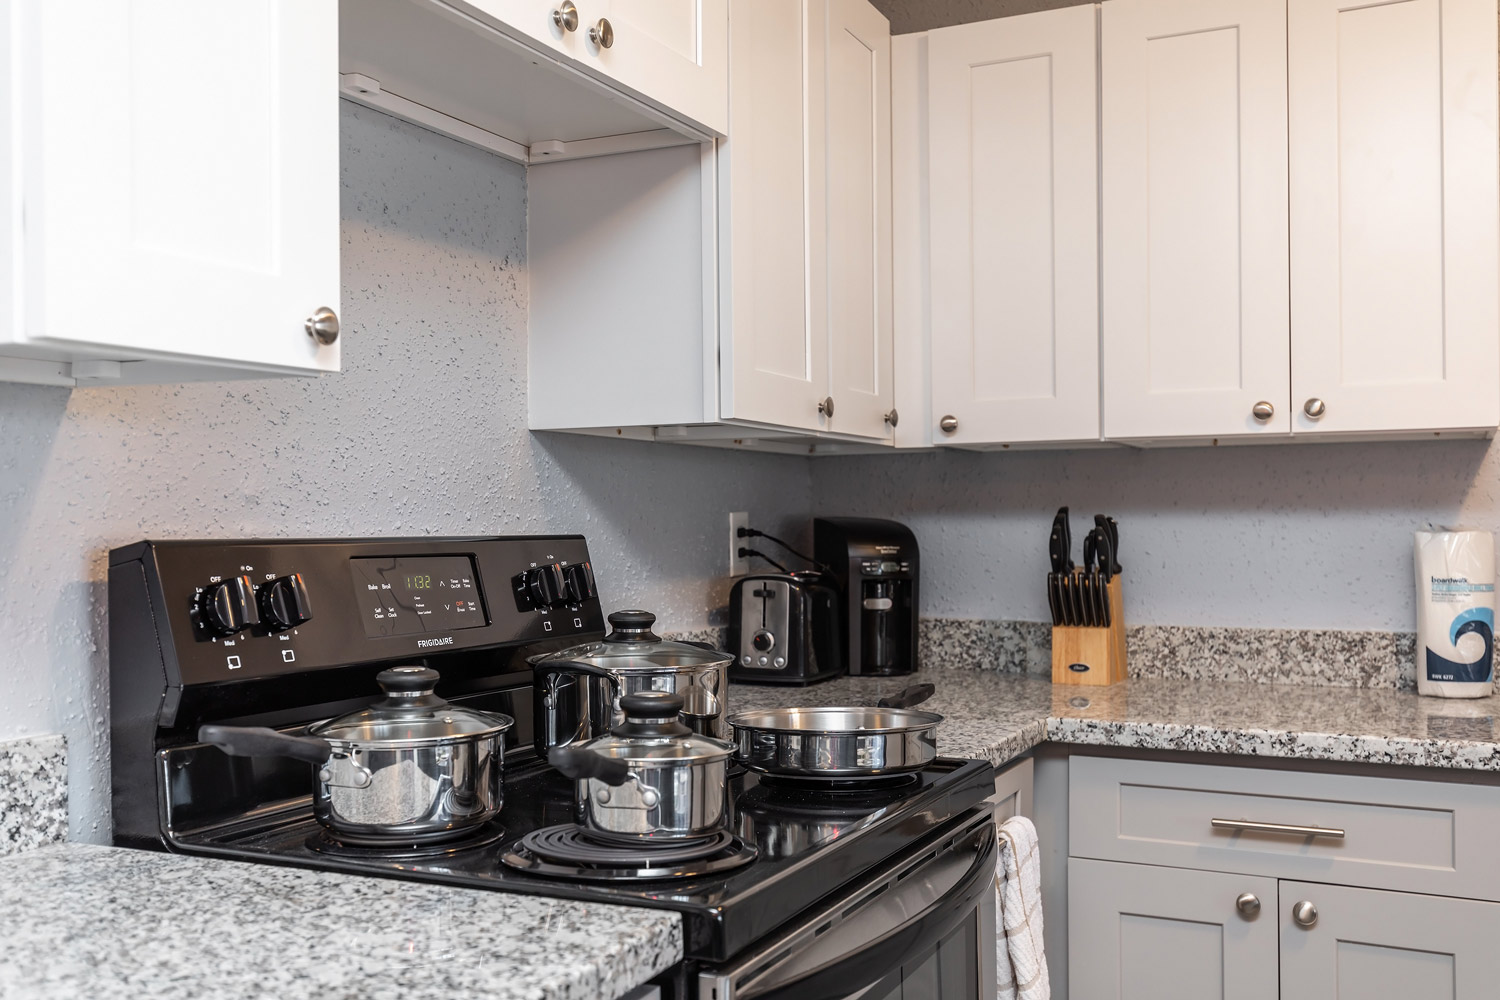 View of the Kitchen at The Five Points at Texas Apartments in Texas City, Texas